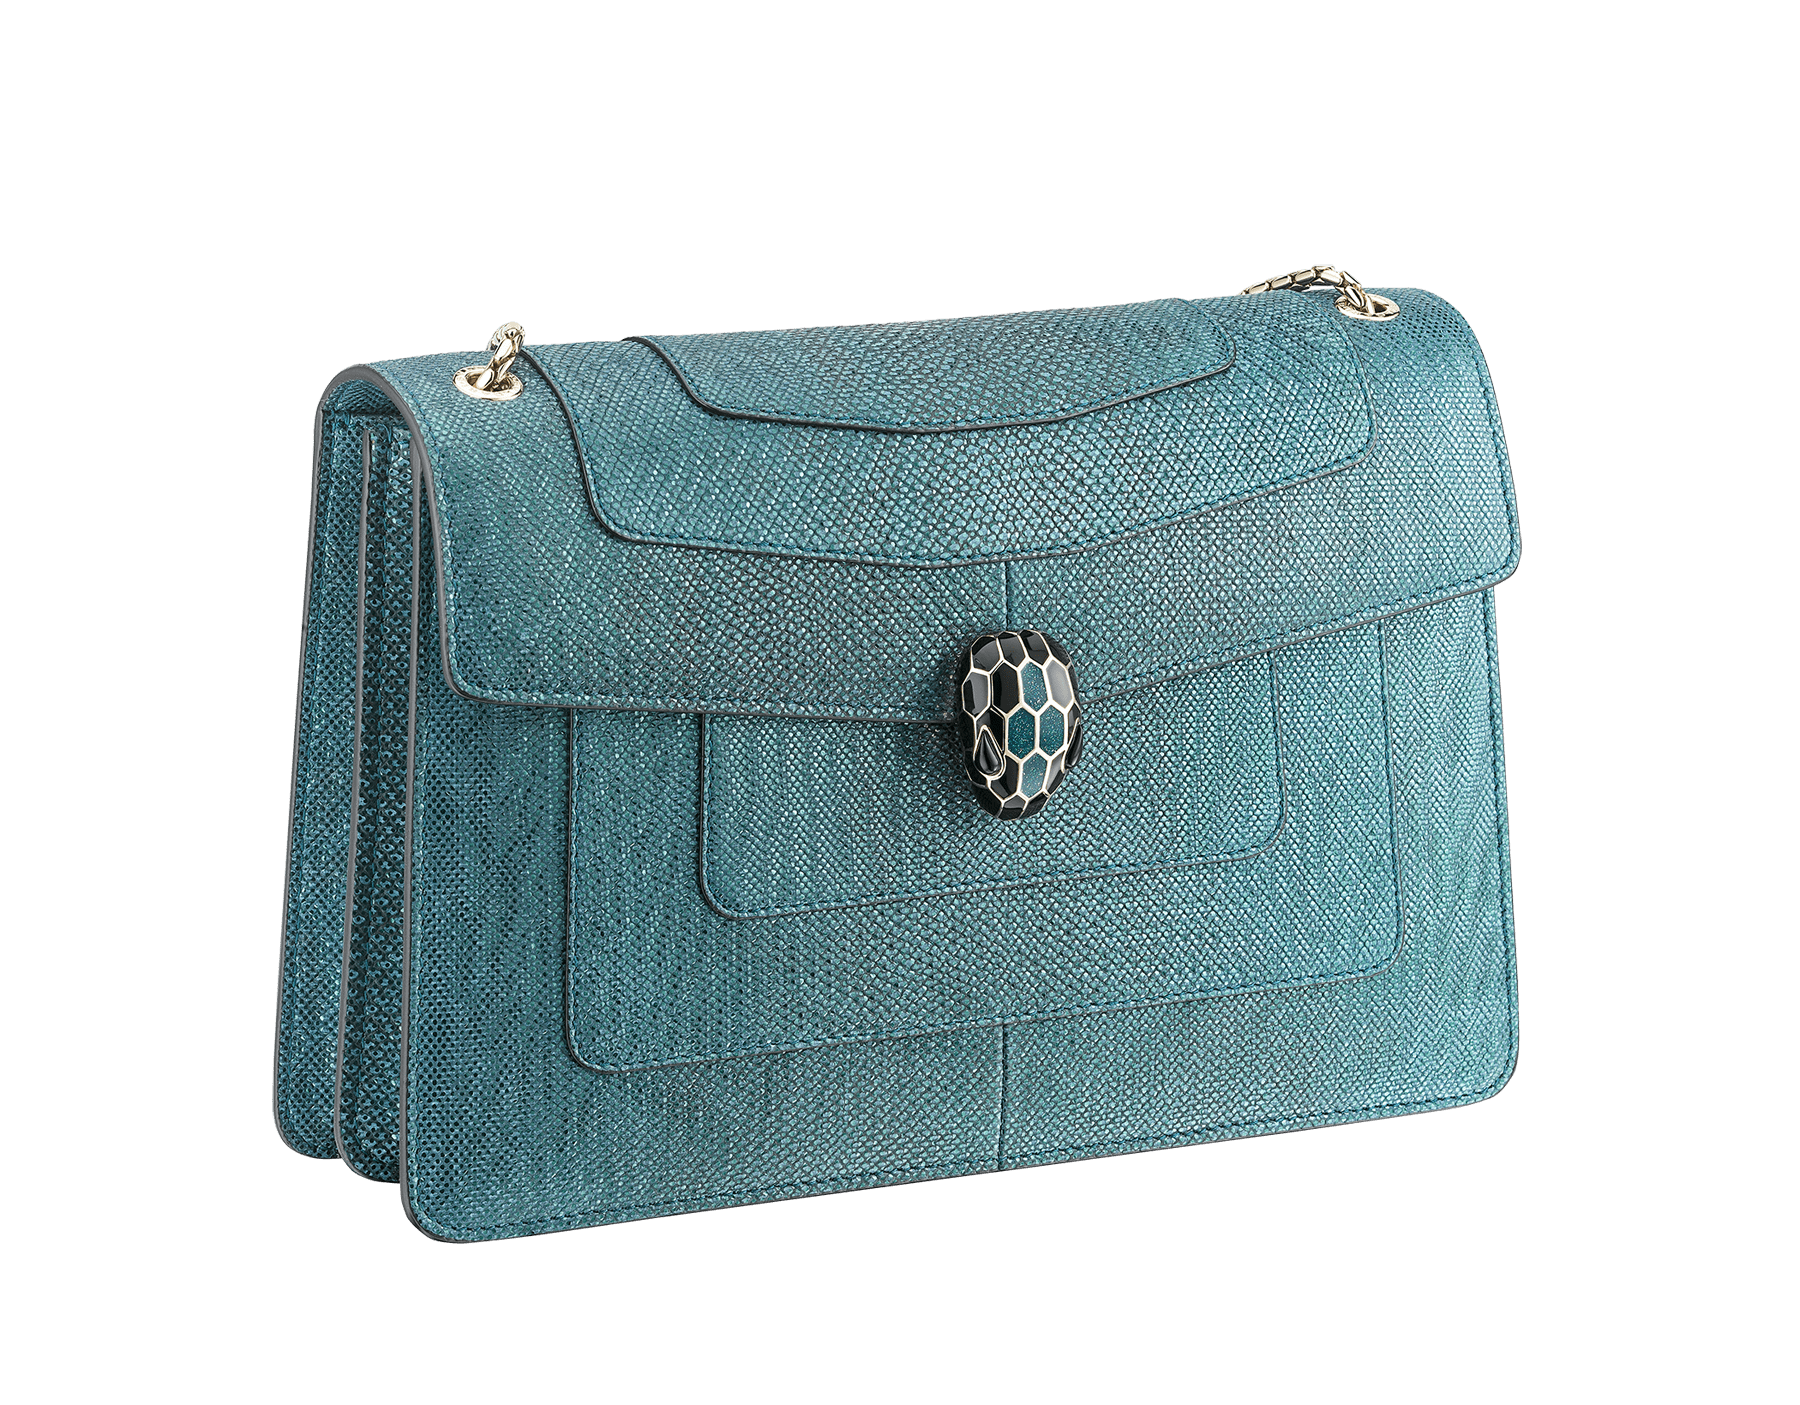 """""""Serpenti Forever"""" shoulder bag in deep jade metallic karung skin. Iconic snakehead closure in light gold plated brass enriched with black and glitter deep jade enamel and black onyx eyes. 287940 image 2"""